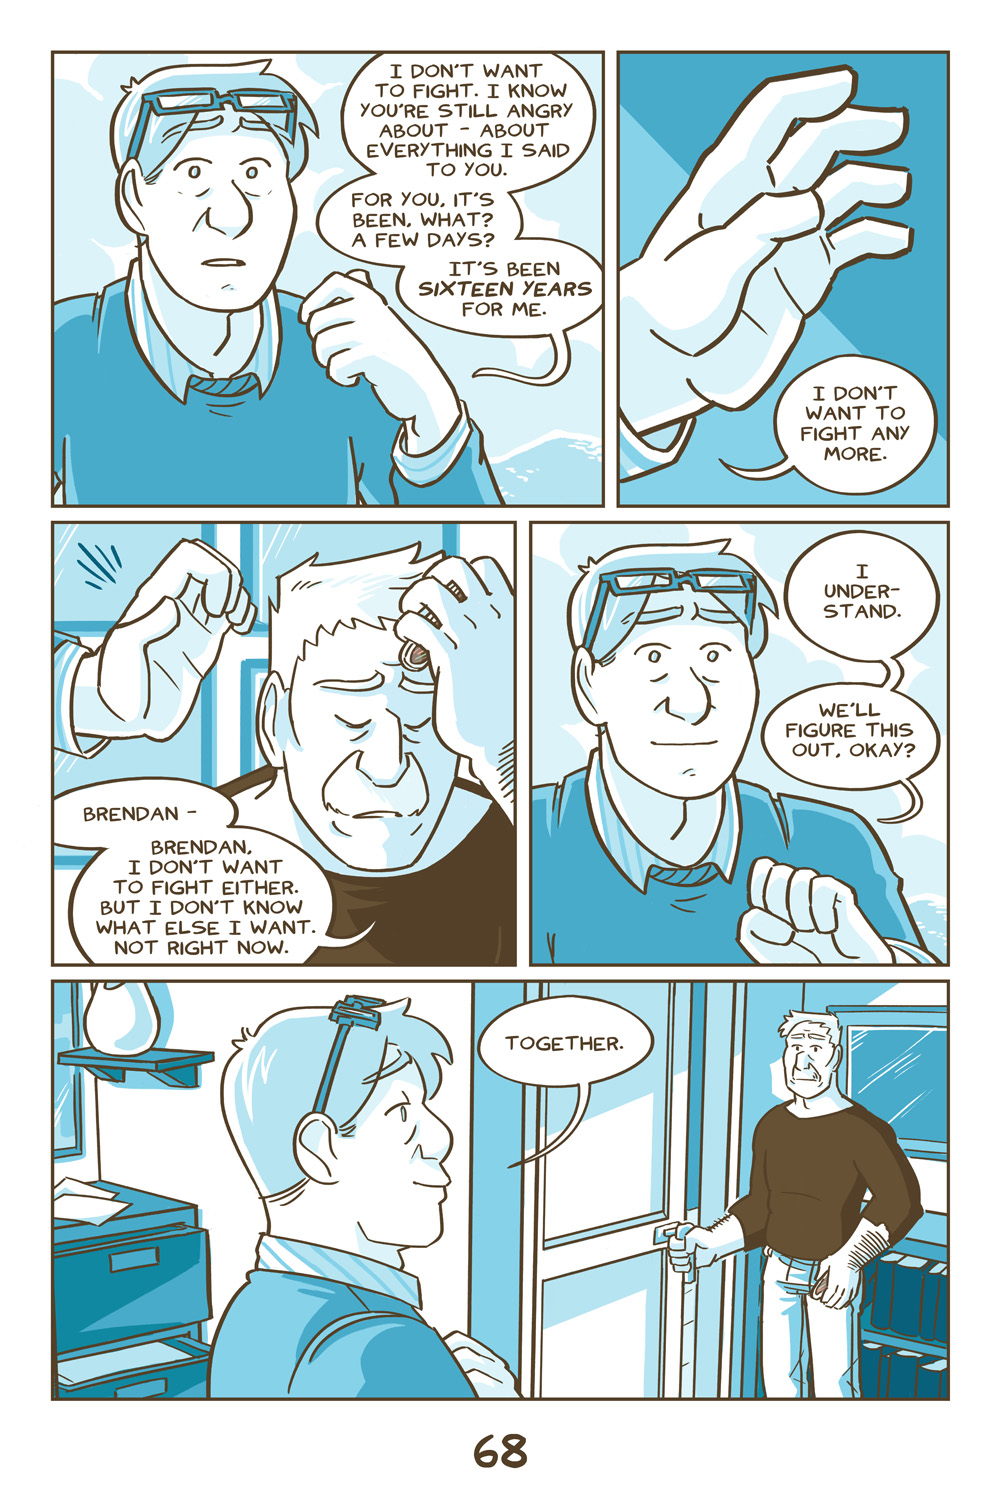 Chapter 2, Page 68